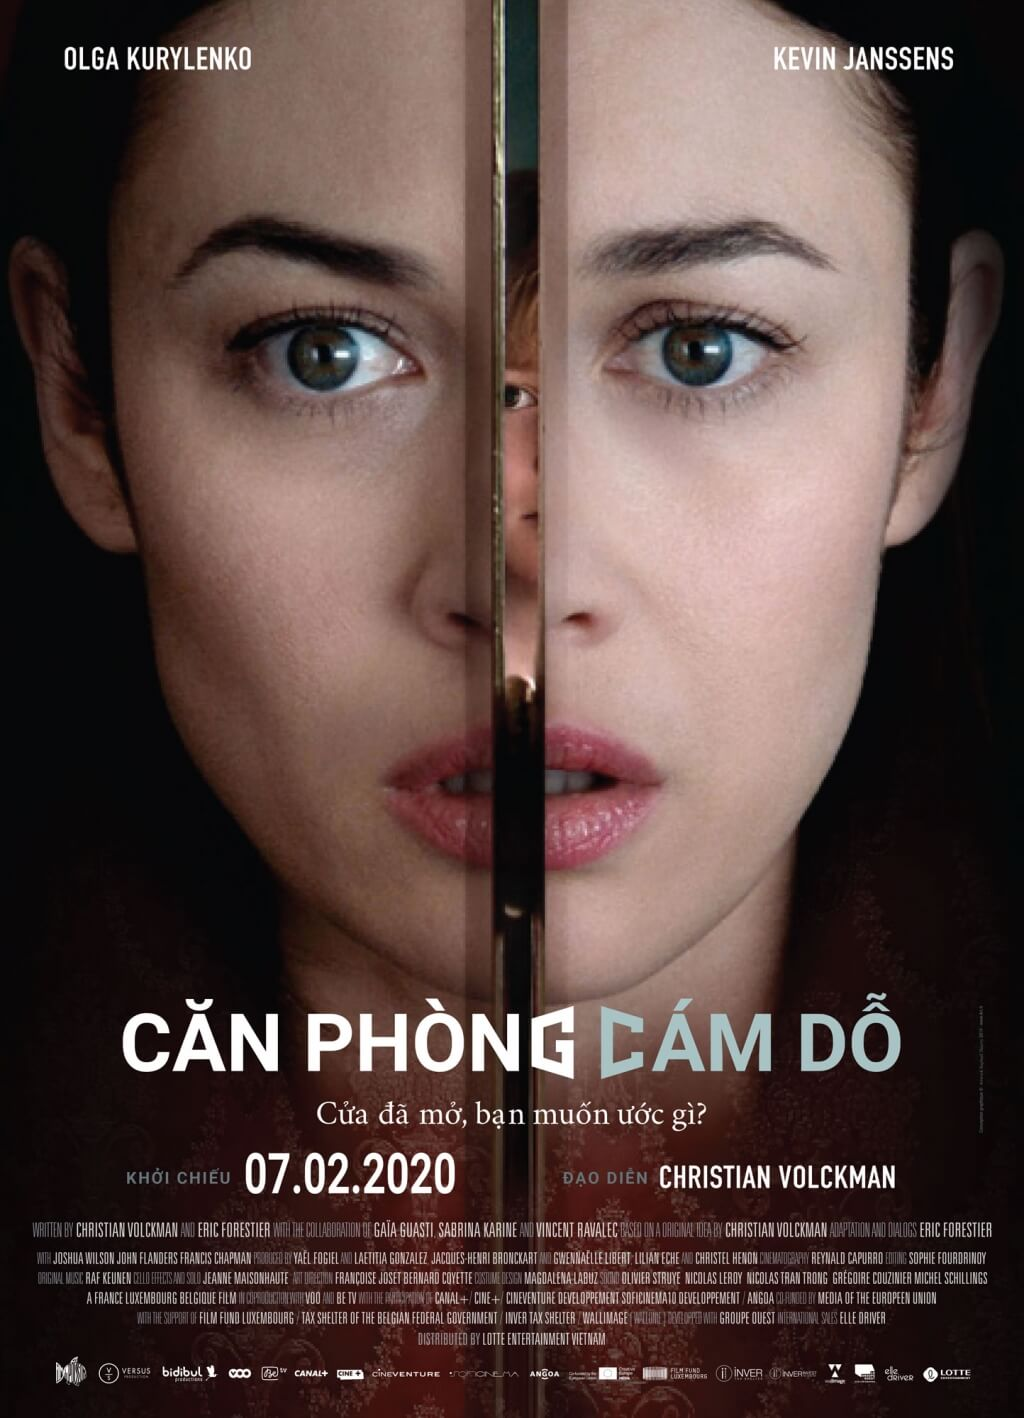 the-room-can-phong-cam-do